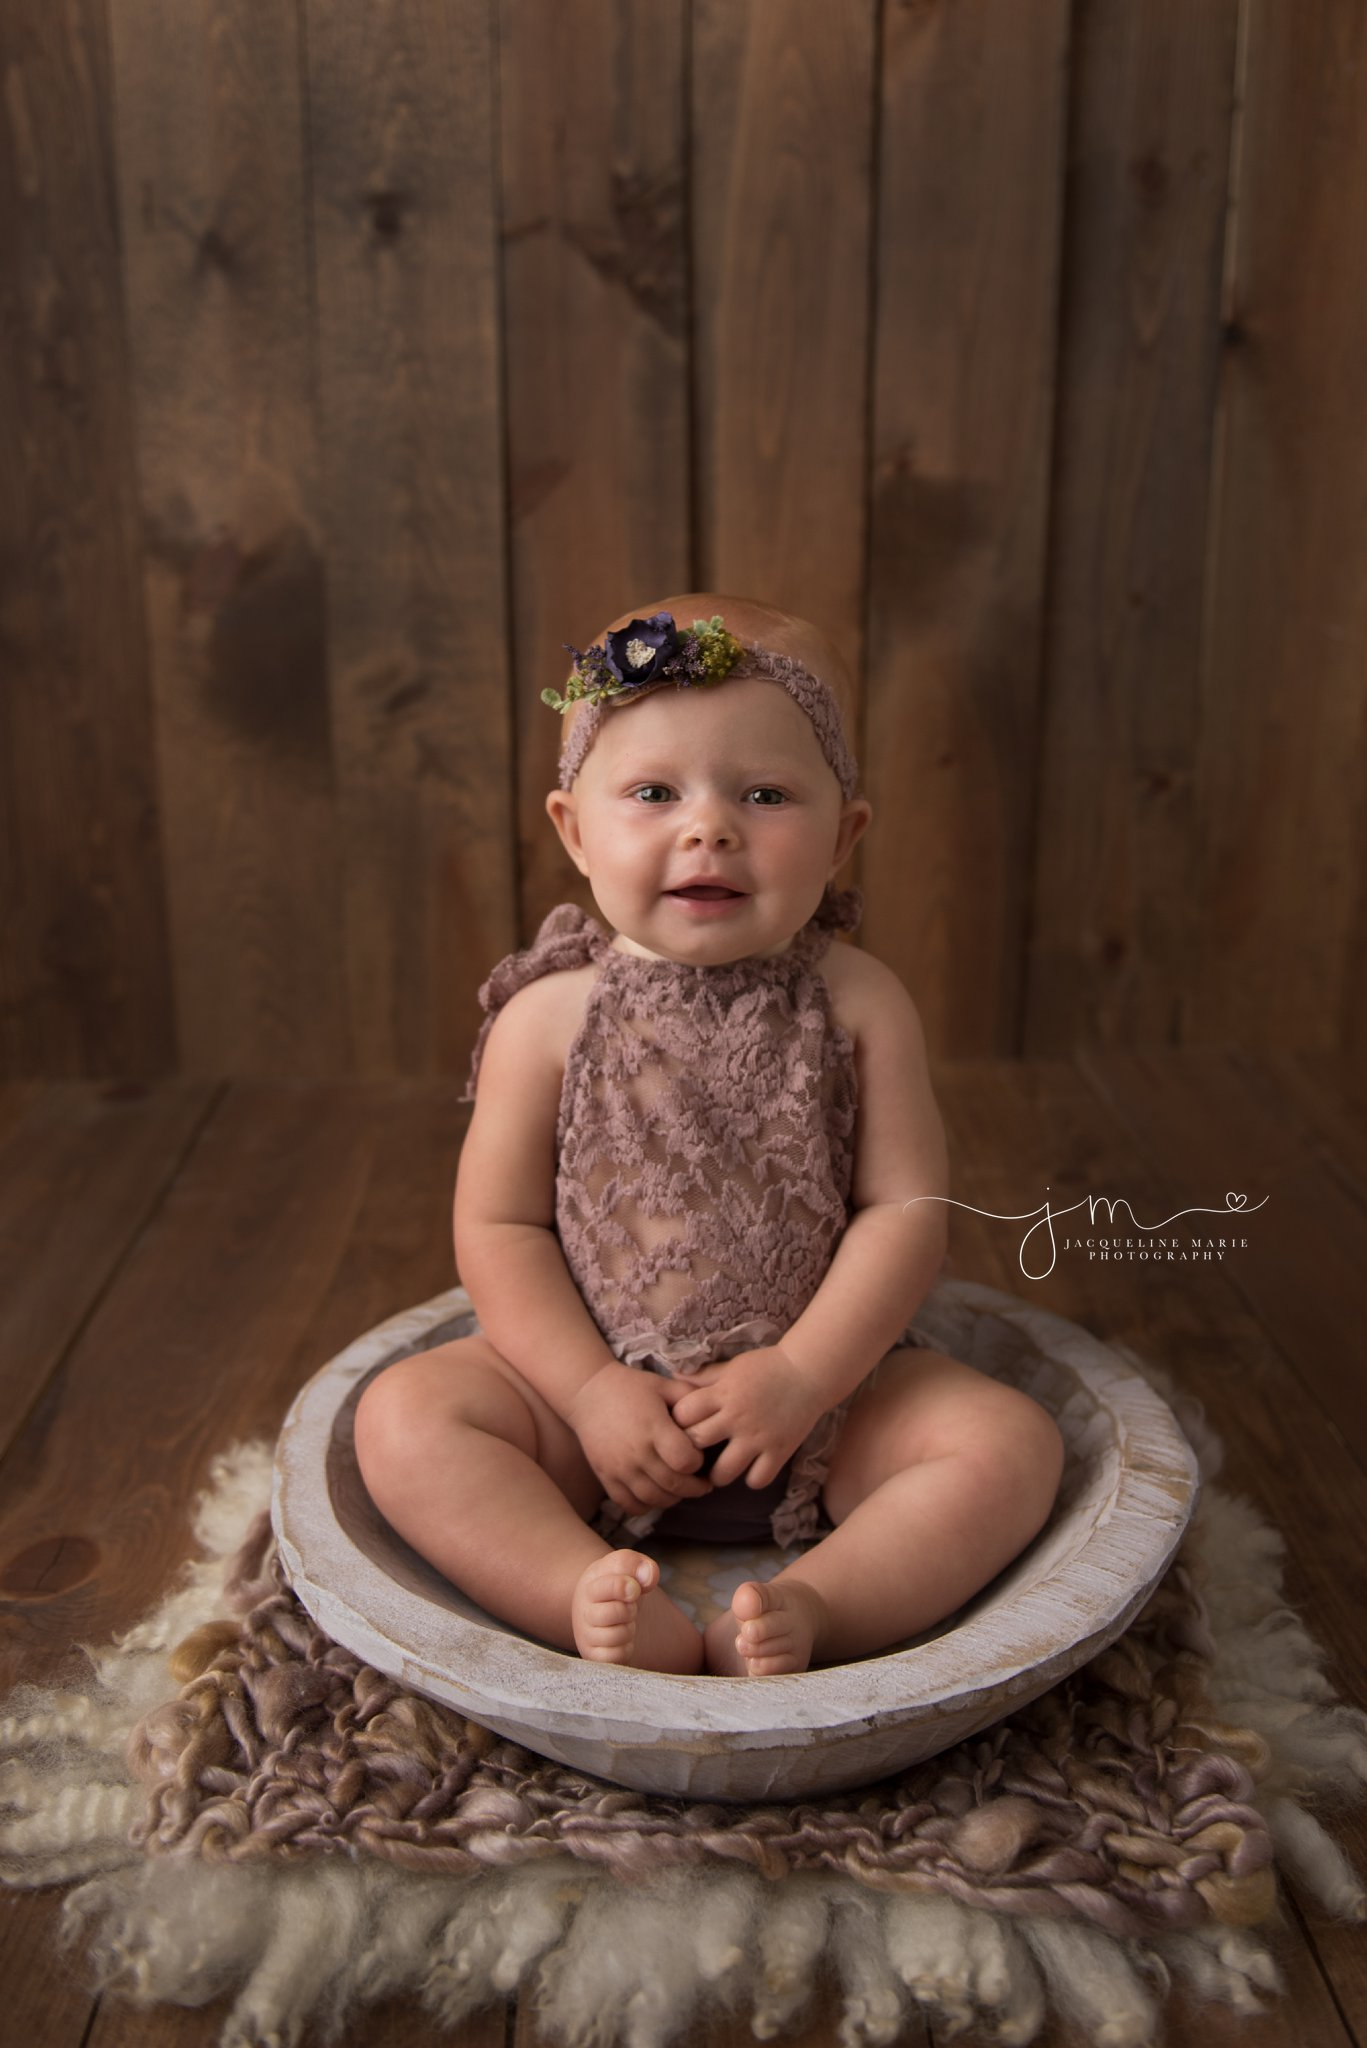 8 month old baby girl sits in wood bowl for child milestone photography in columbus ohio